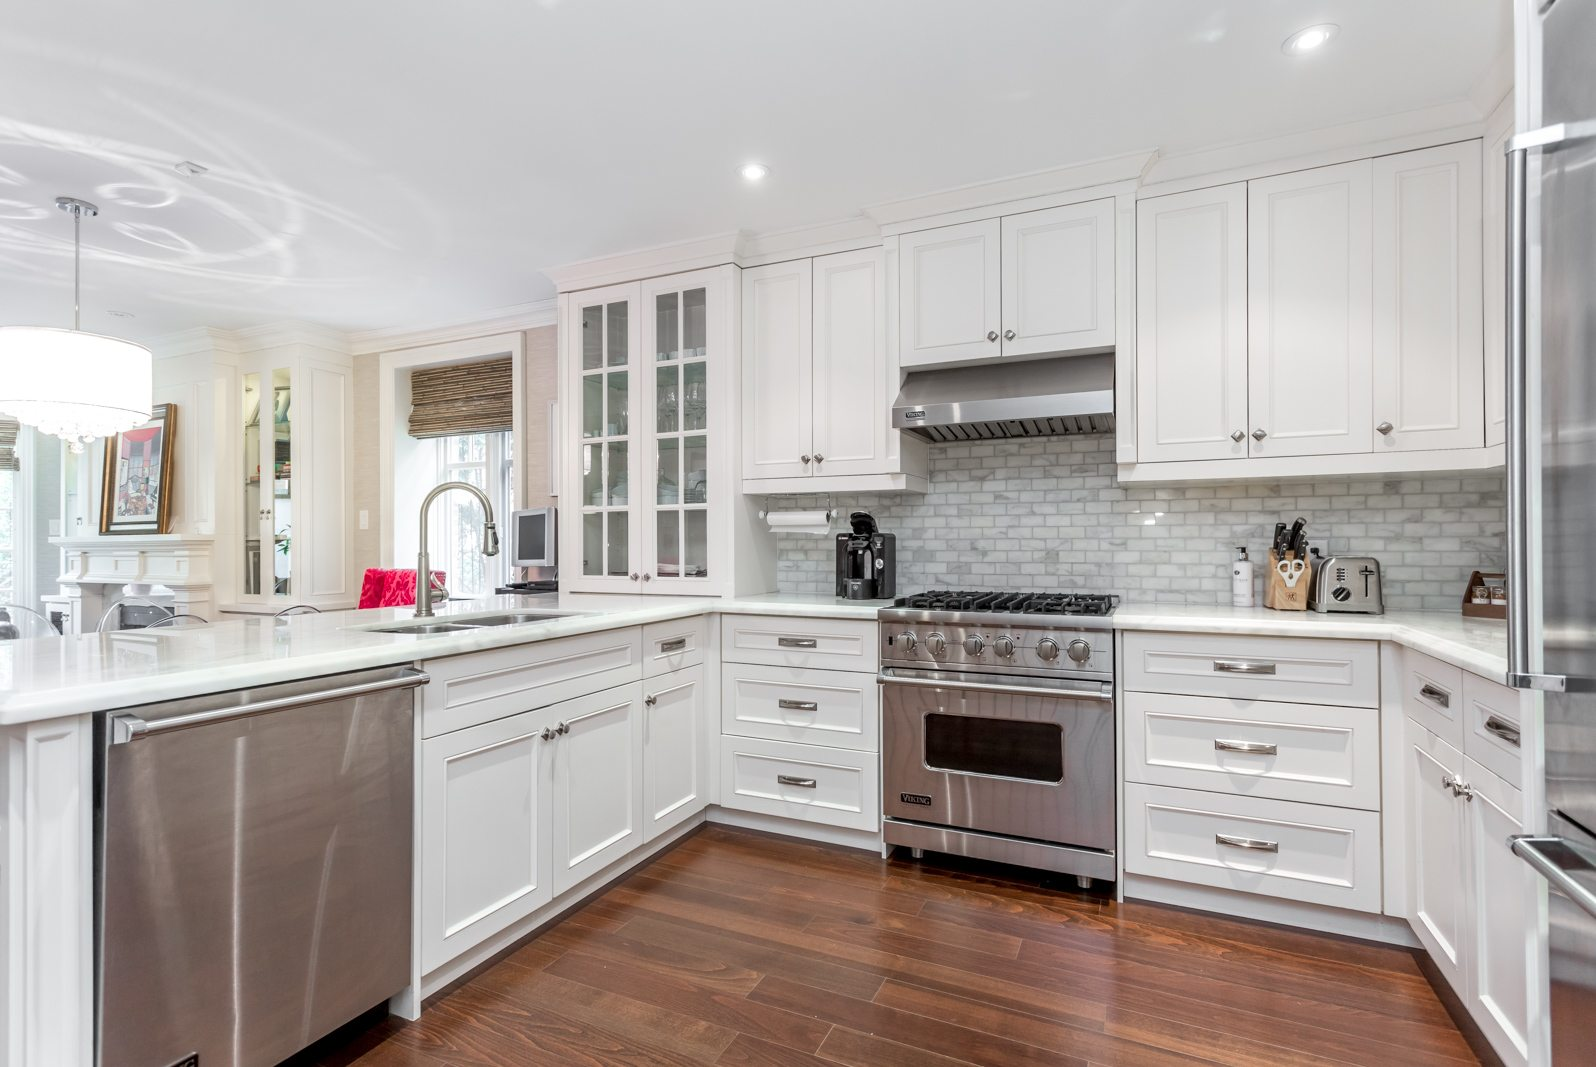 toronto-condo-for-sale-317-lonsdale-road-5